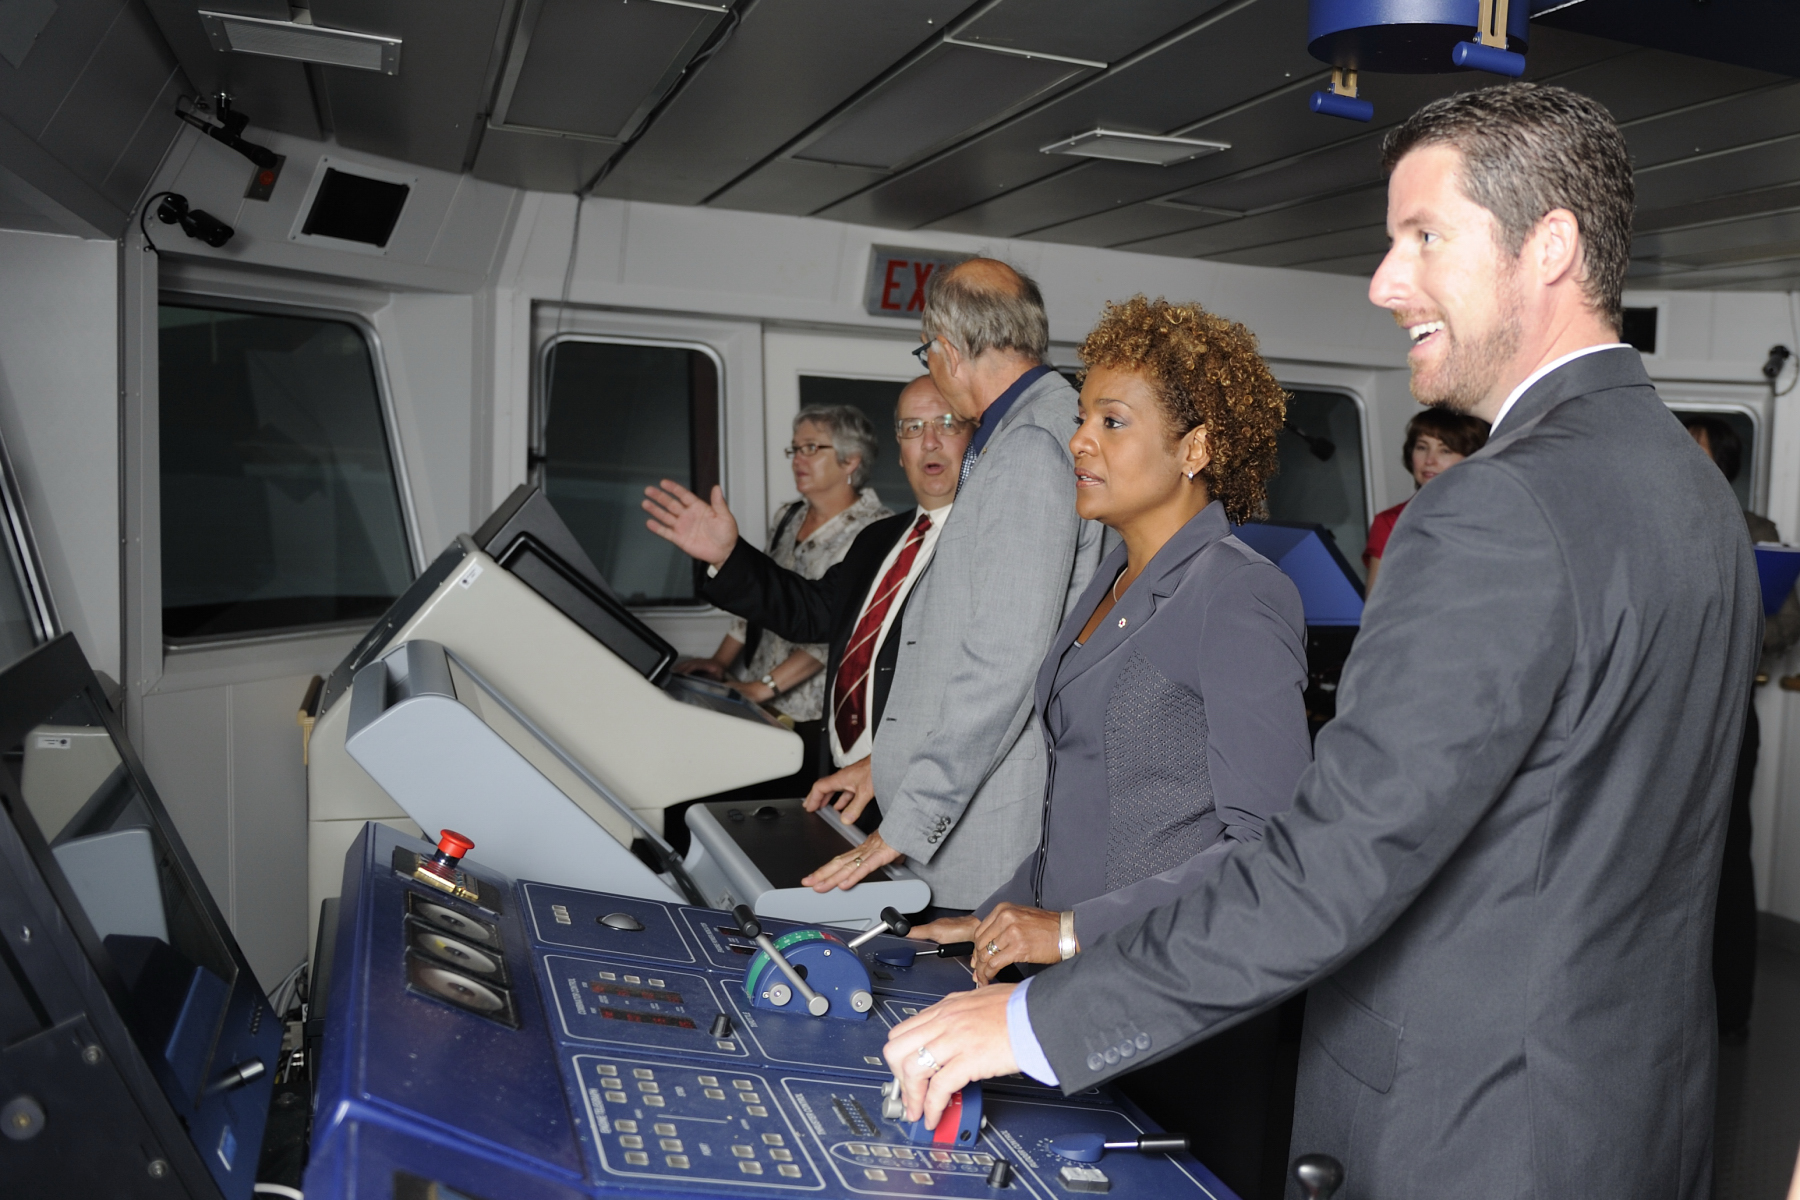 The Centre for Marine Simulation, which began its operations in 1994, possesses the most comprehensive suite of marine simulation capabilities in North America.